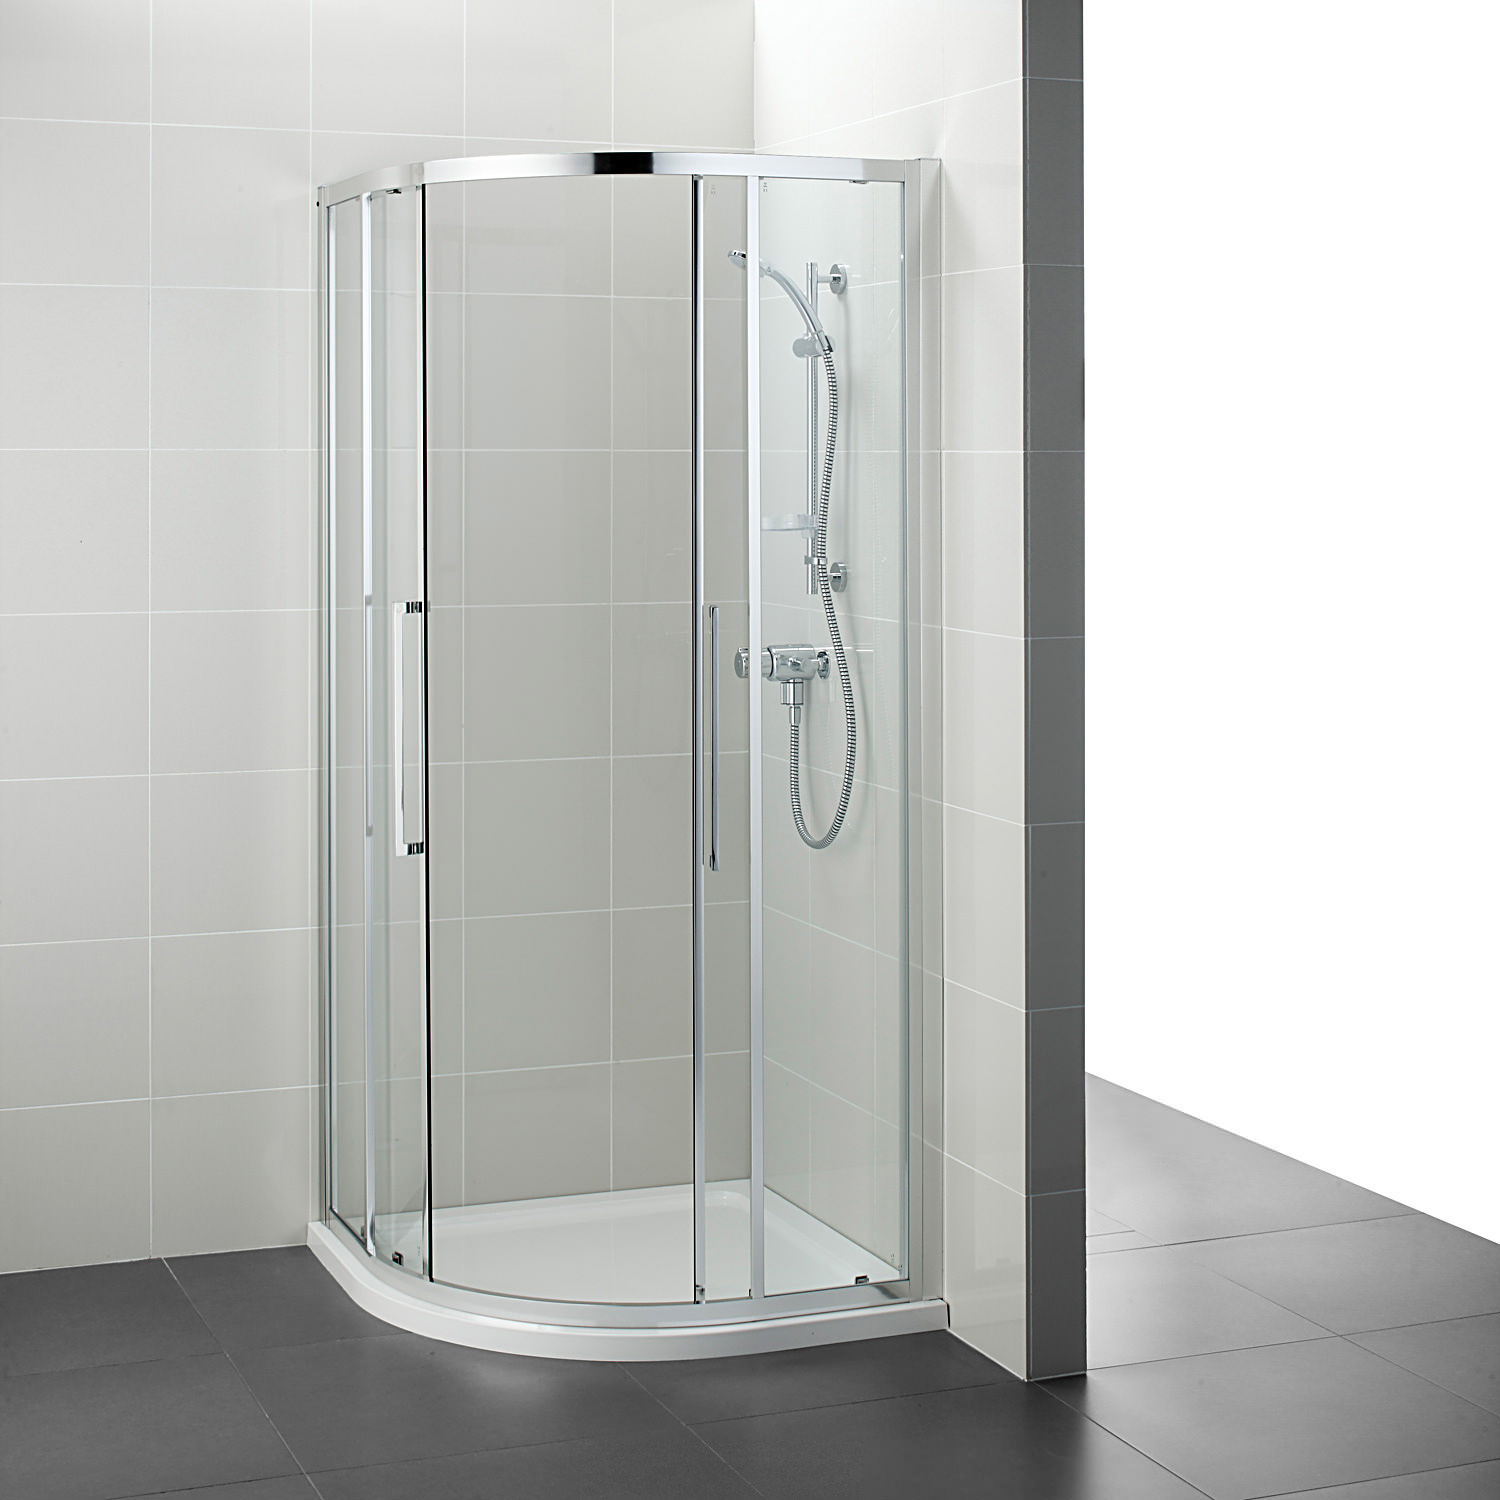 Merlyn 8 series 800mm 2 door quadrant shower enclosure - Ideal Standard Kubo 800mm Quadrant Shower Enclosure T7350eo Technical Drawing Qs V25820 T7350eo Additional Image Of Ideal Standards T7350eo